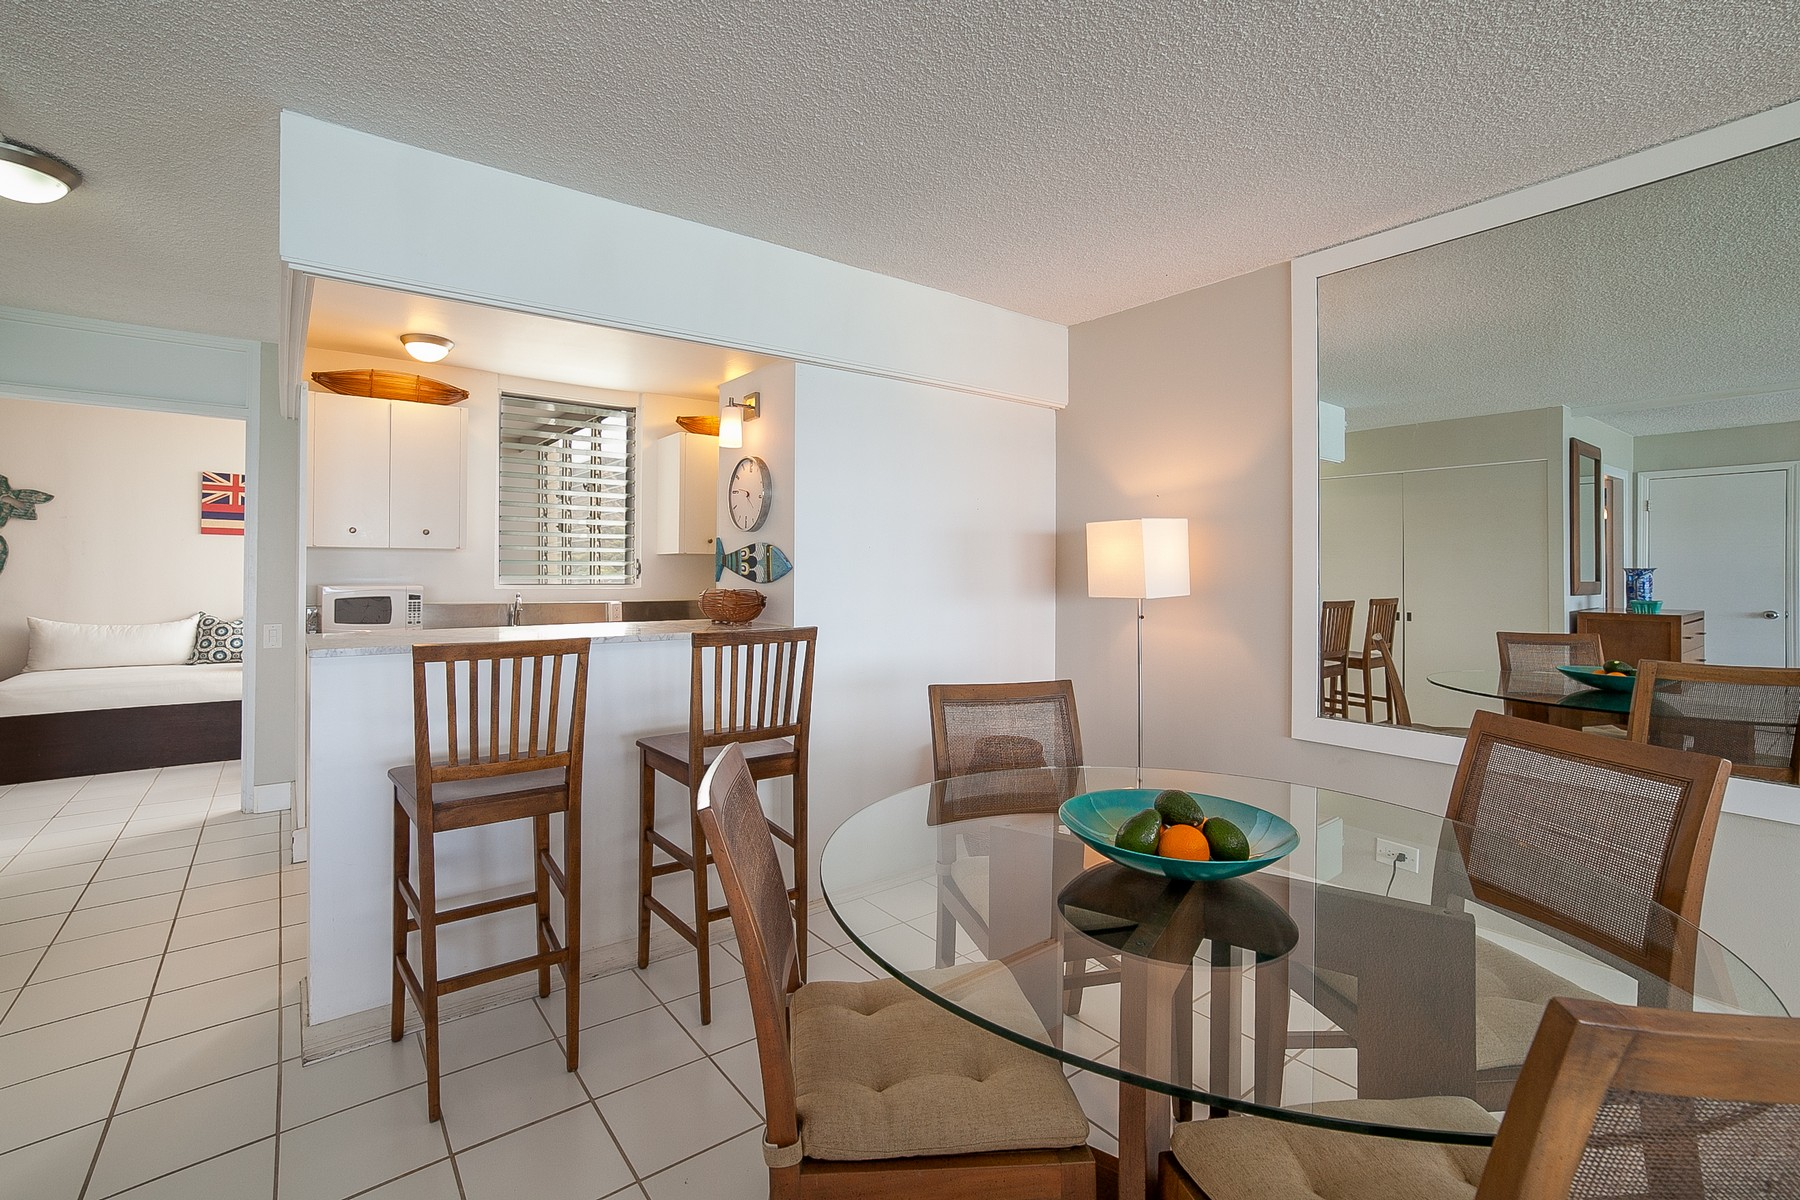 Additional photo for property listing at Gold Coast Living at it's Finest! 2895 Kalakaua Ave #1104 Honolulu, Hawaii 96815 United States